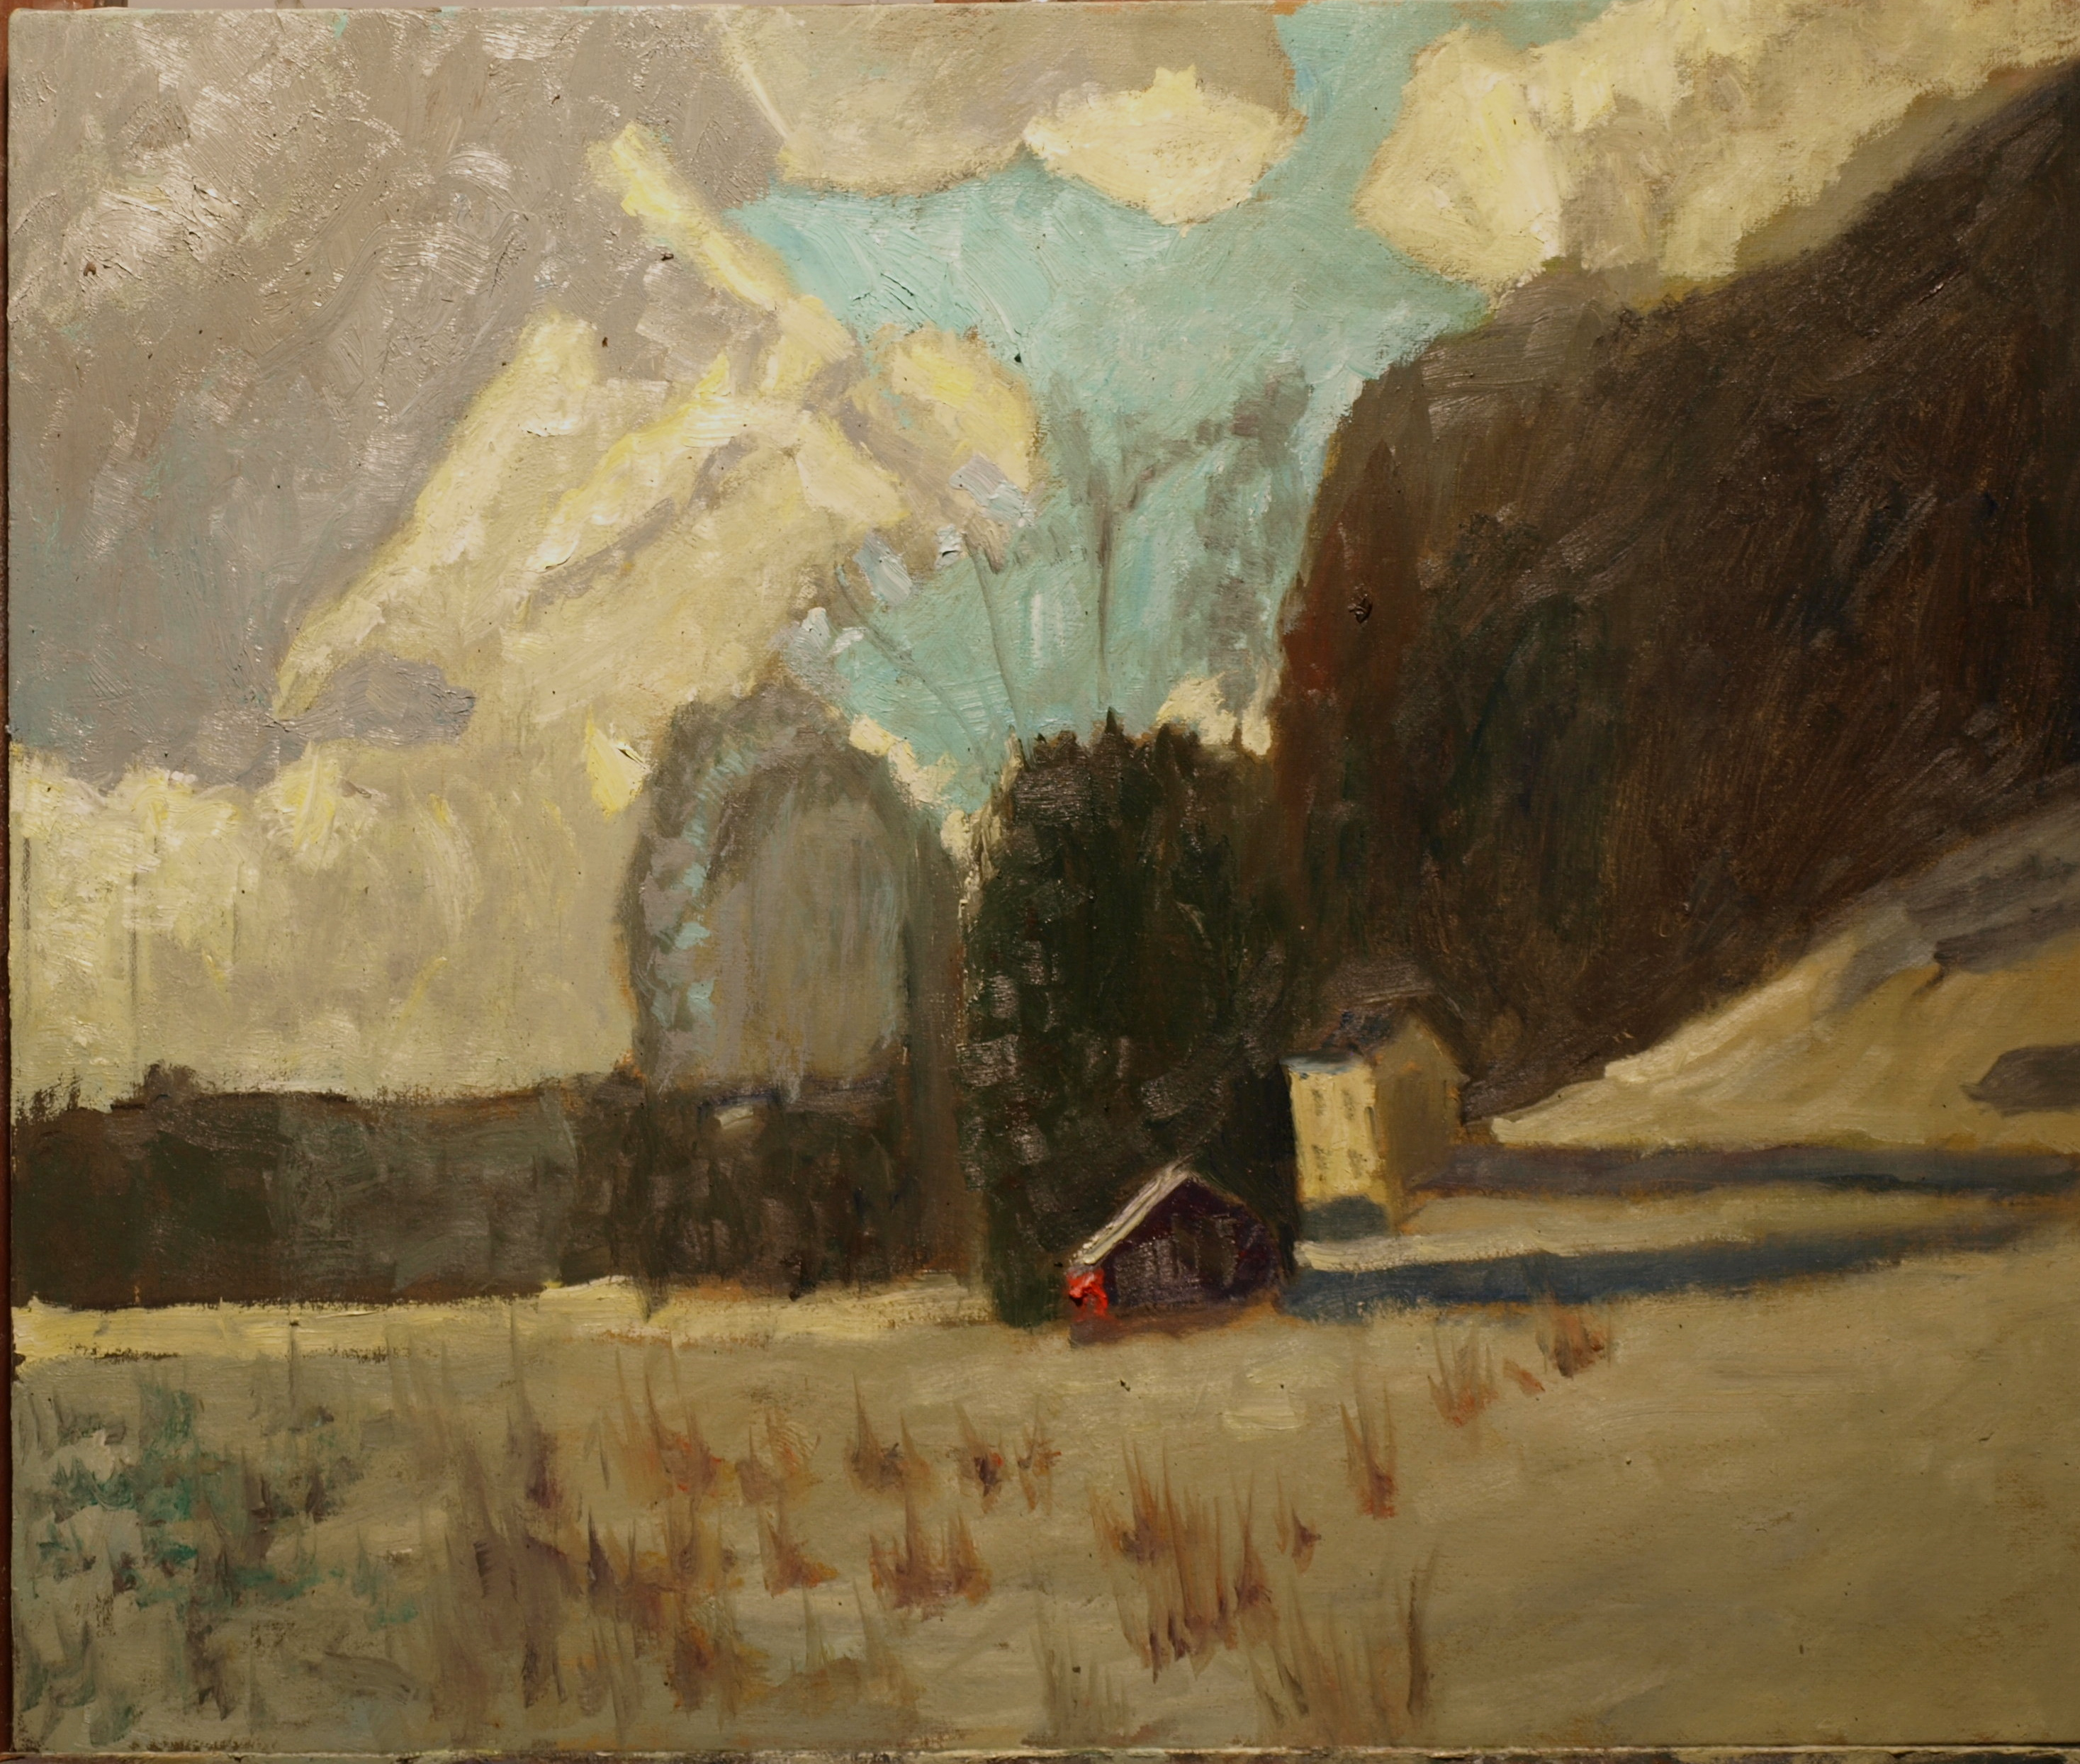 Troutman's, Oil on Canvas, 20 x 24 Inches, by Richard Stalter, $650